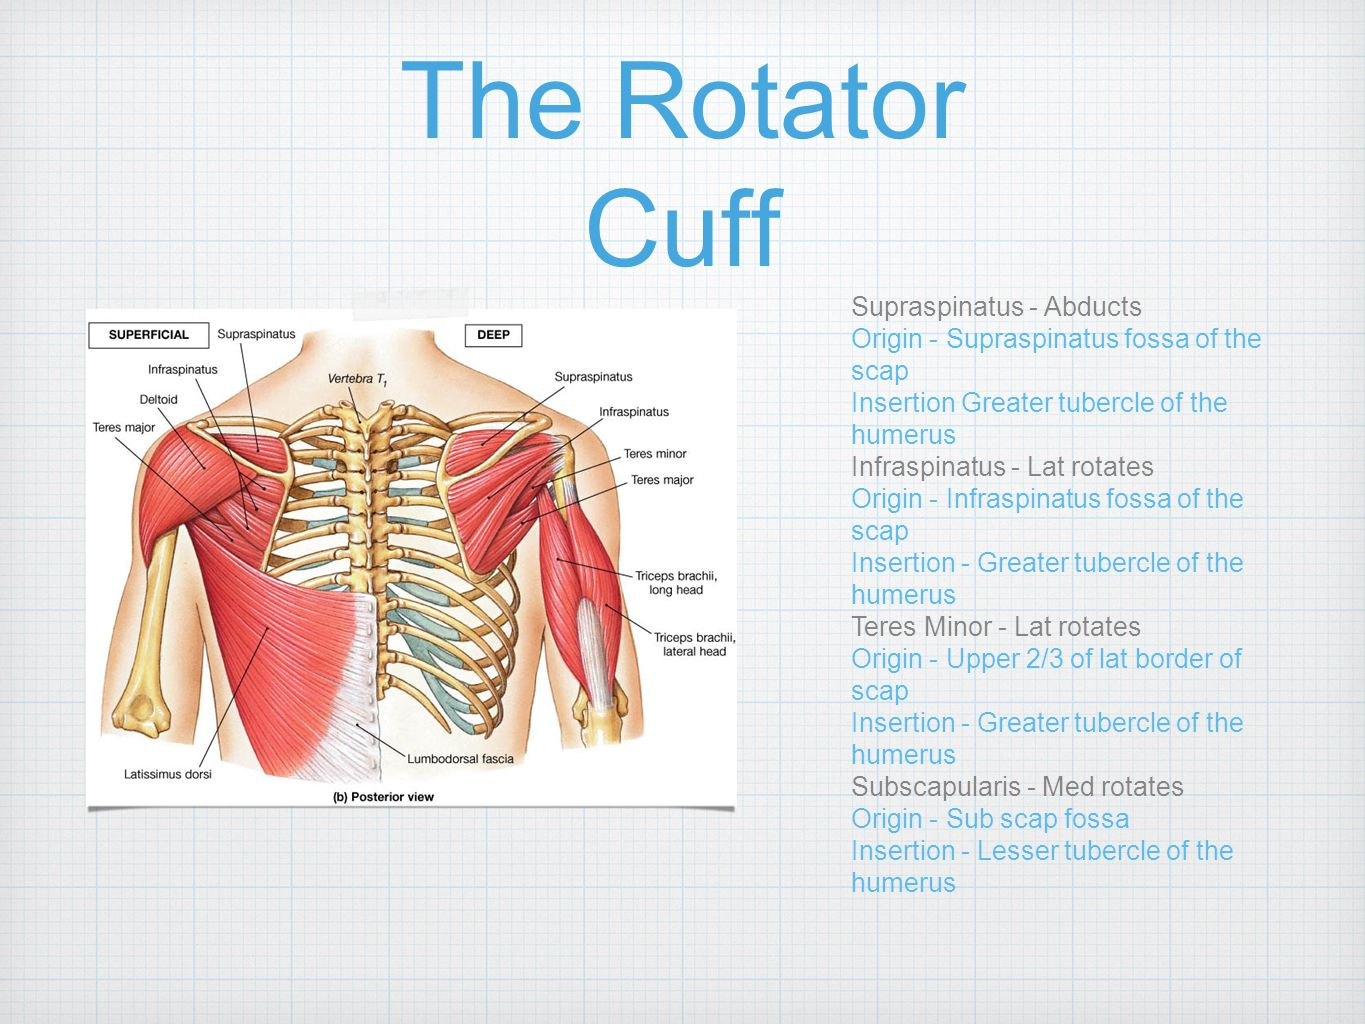 The Rotator Cuff Supraspinatus - Abducts Origin - Supraspinatus fossa of the scap Insertion Greater tubercle of the humerus Infraspinatus - Lat rotate